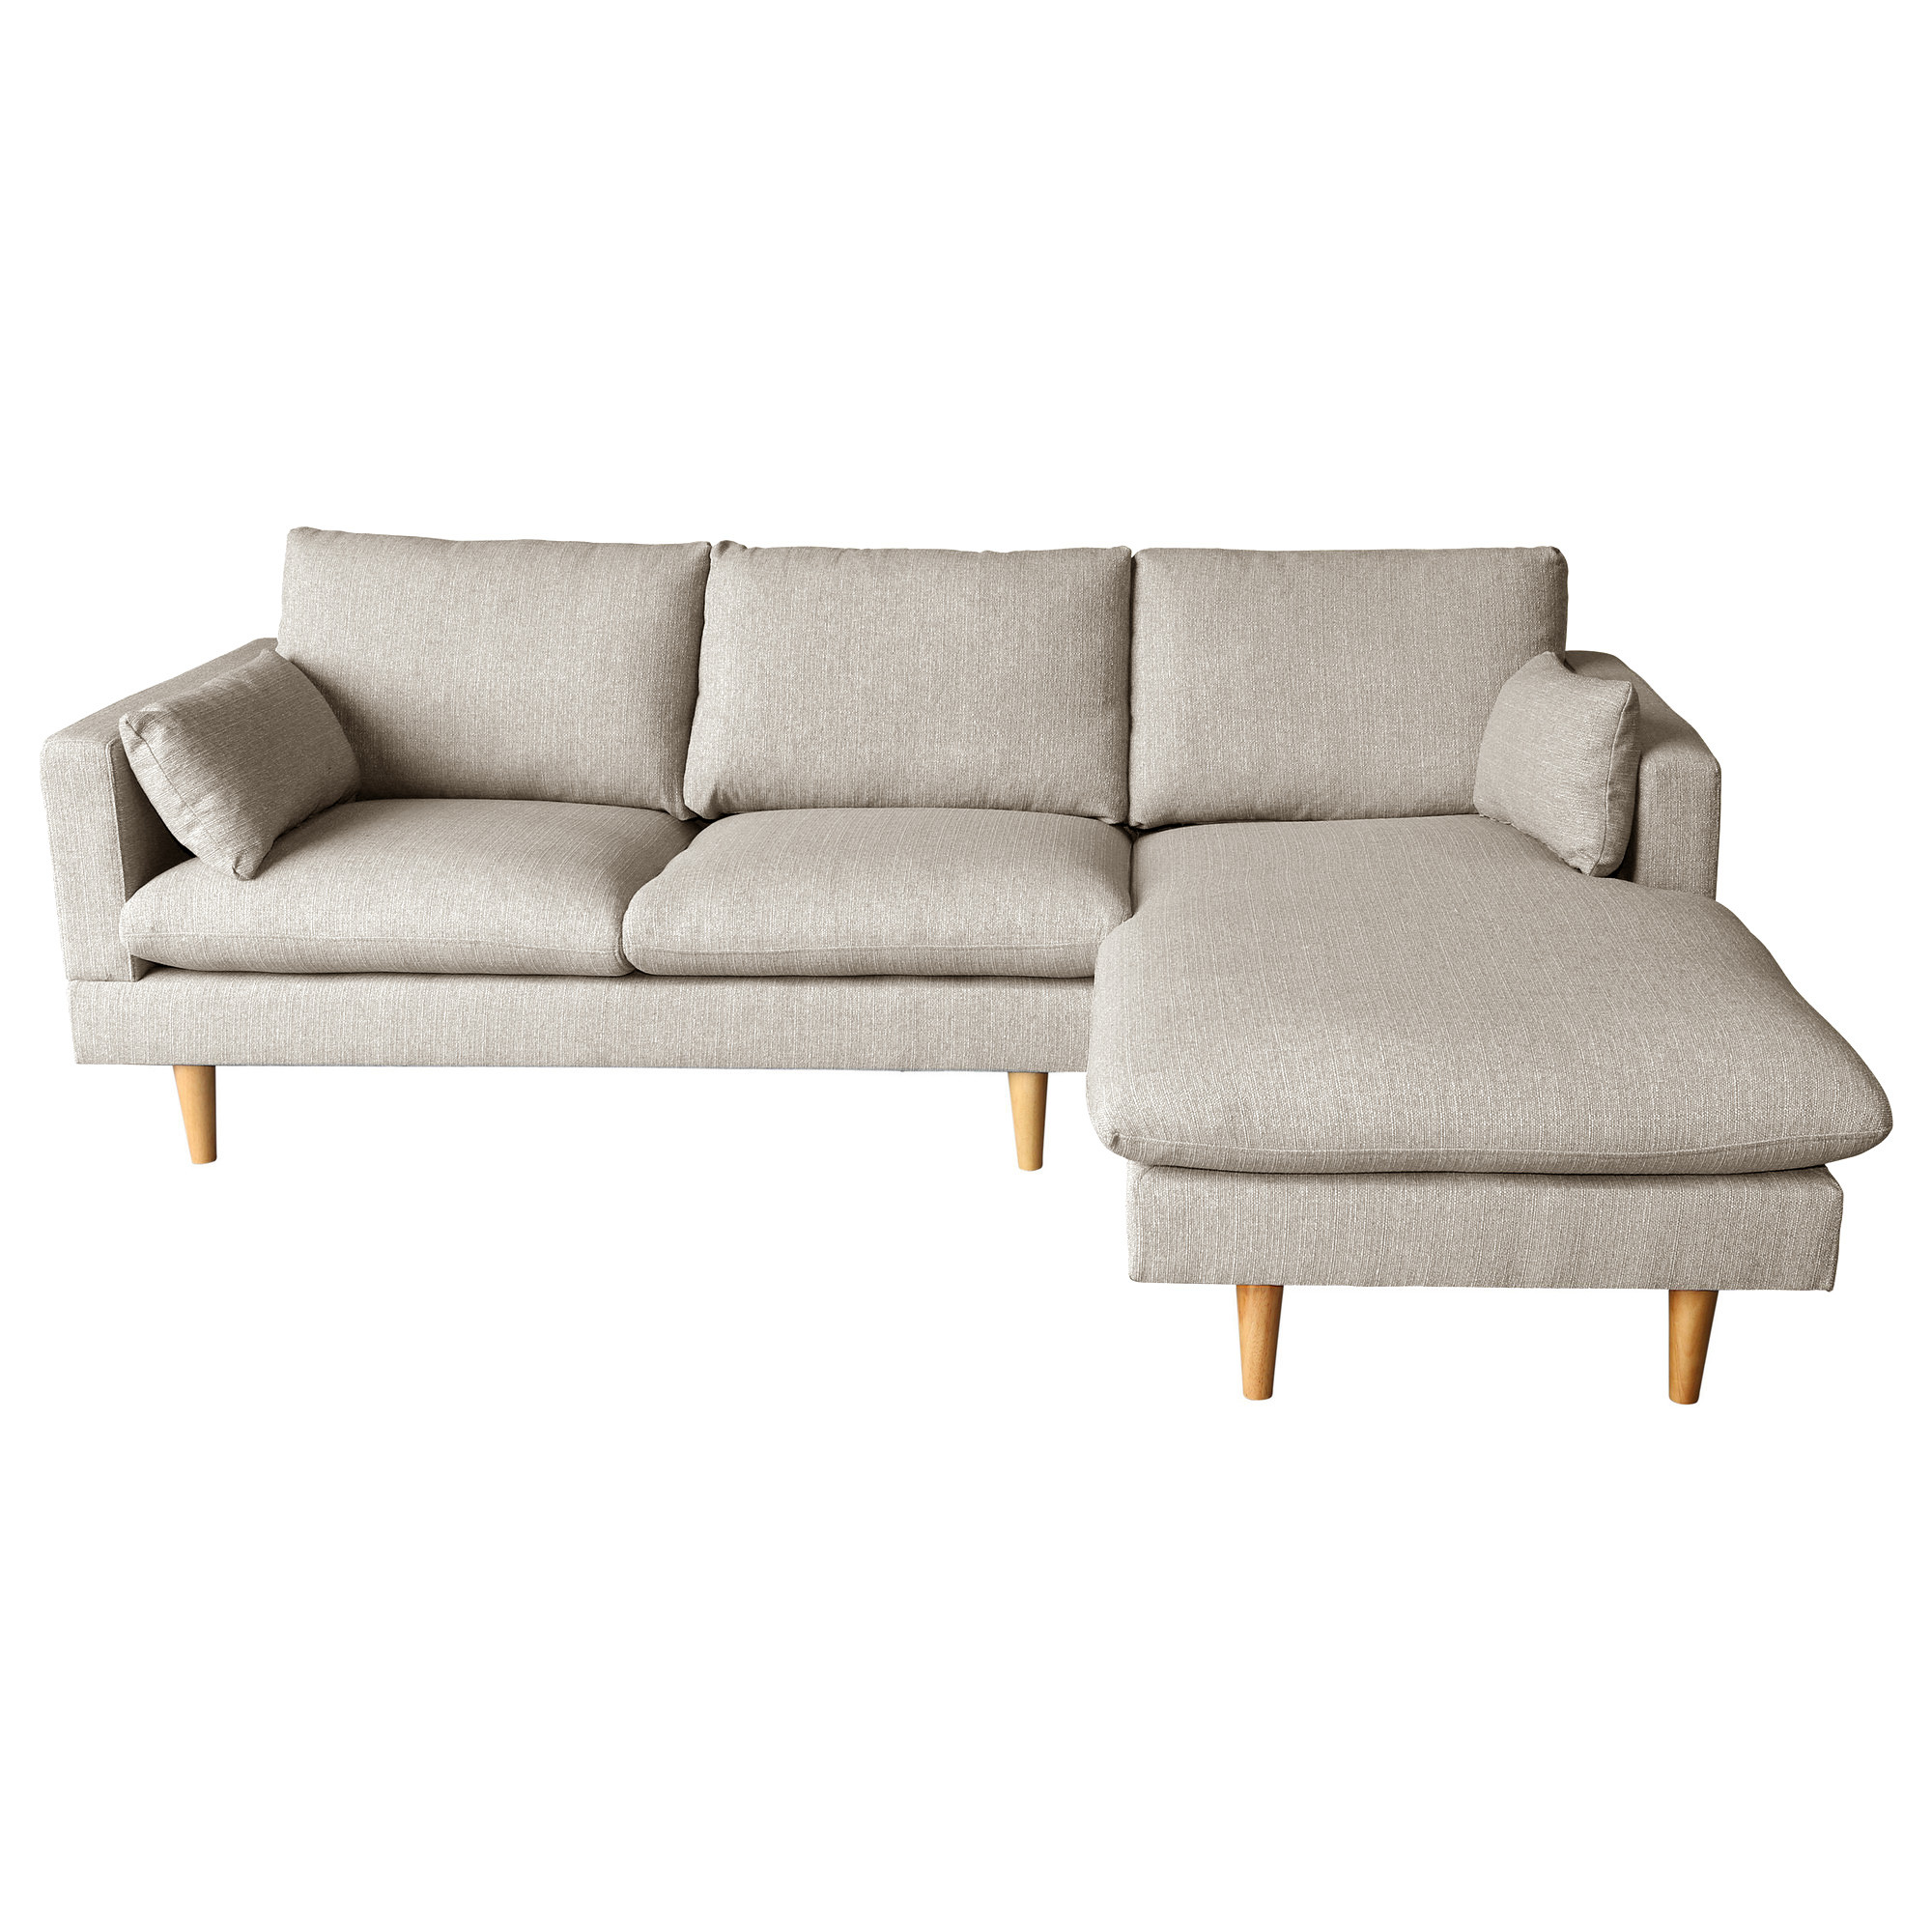 Silas Sand 2 Seater Sofa with Right Chaise